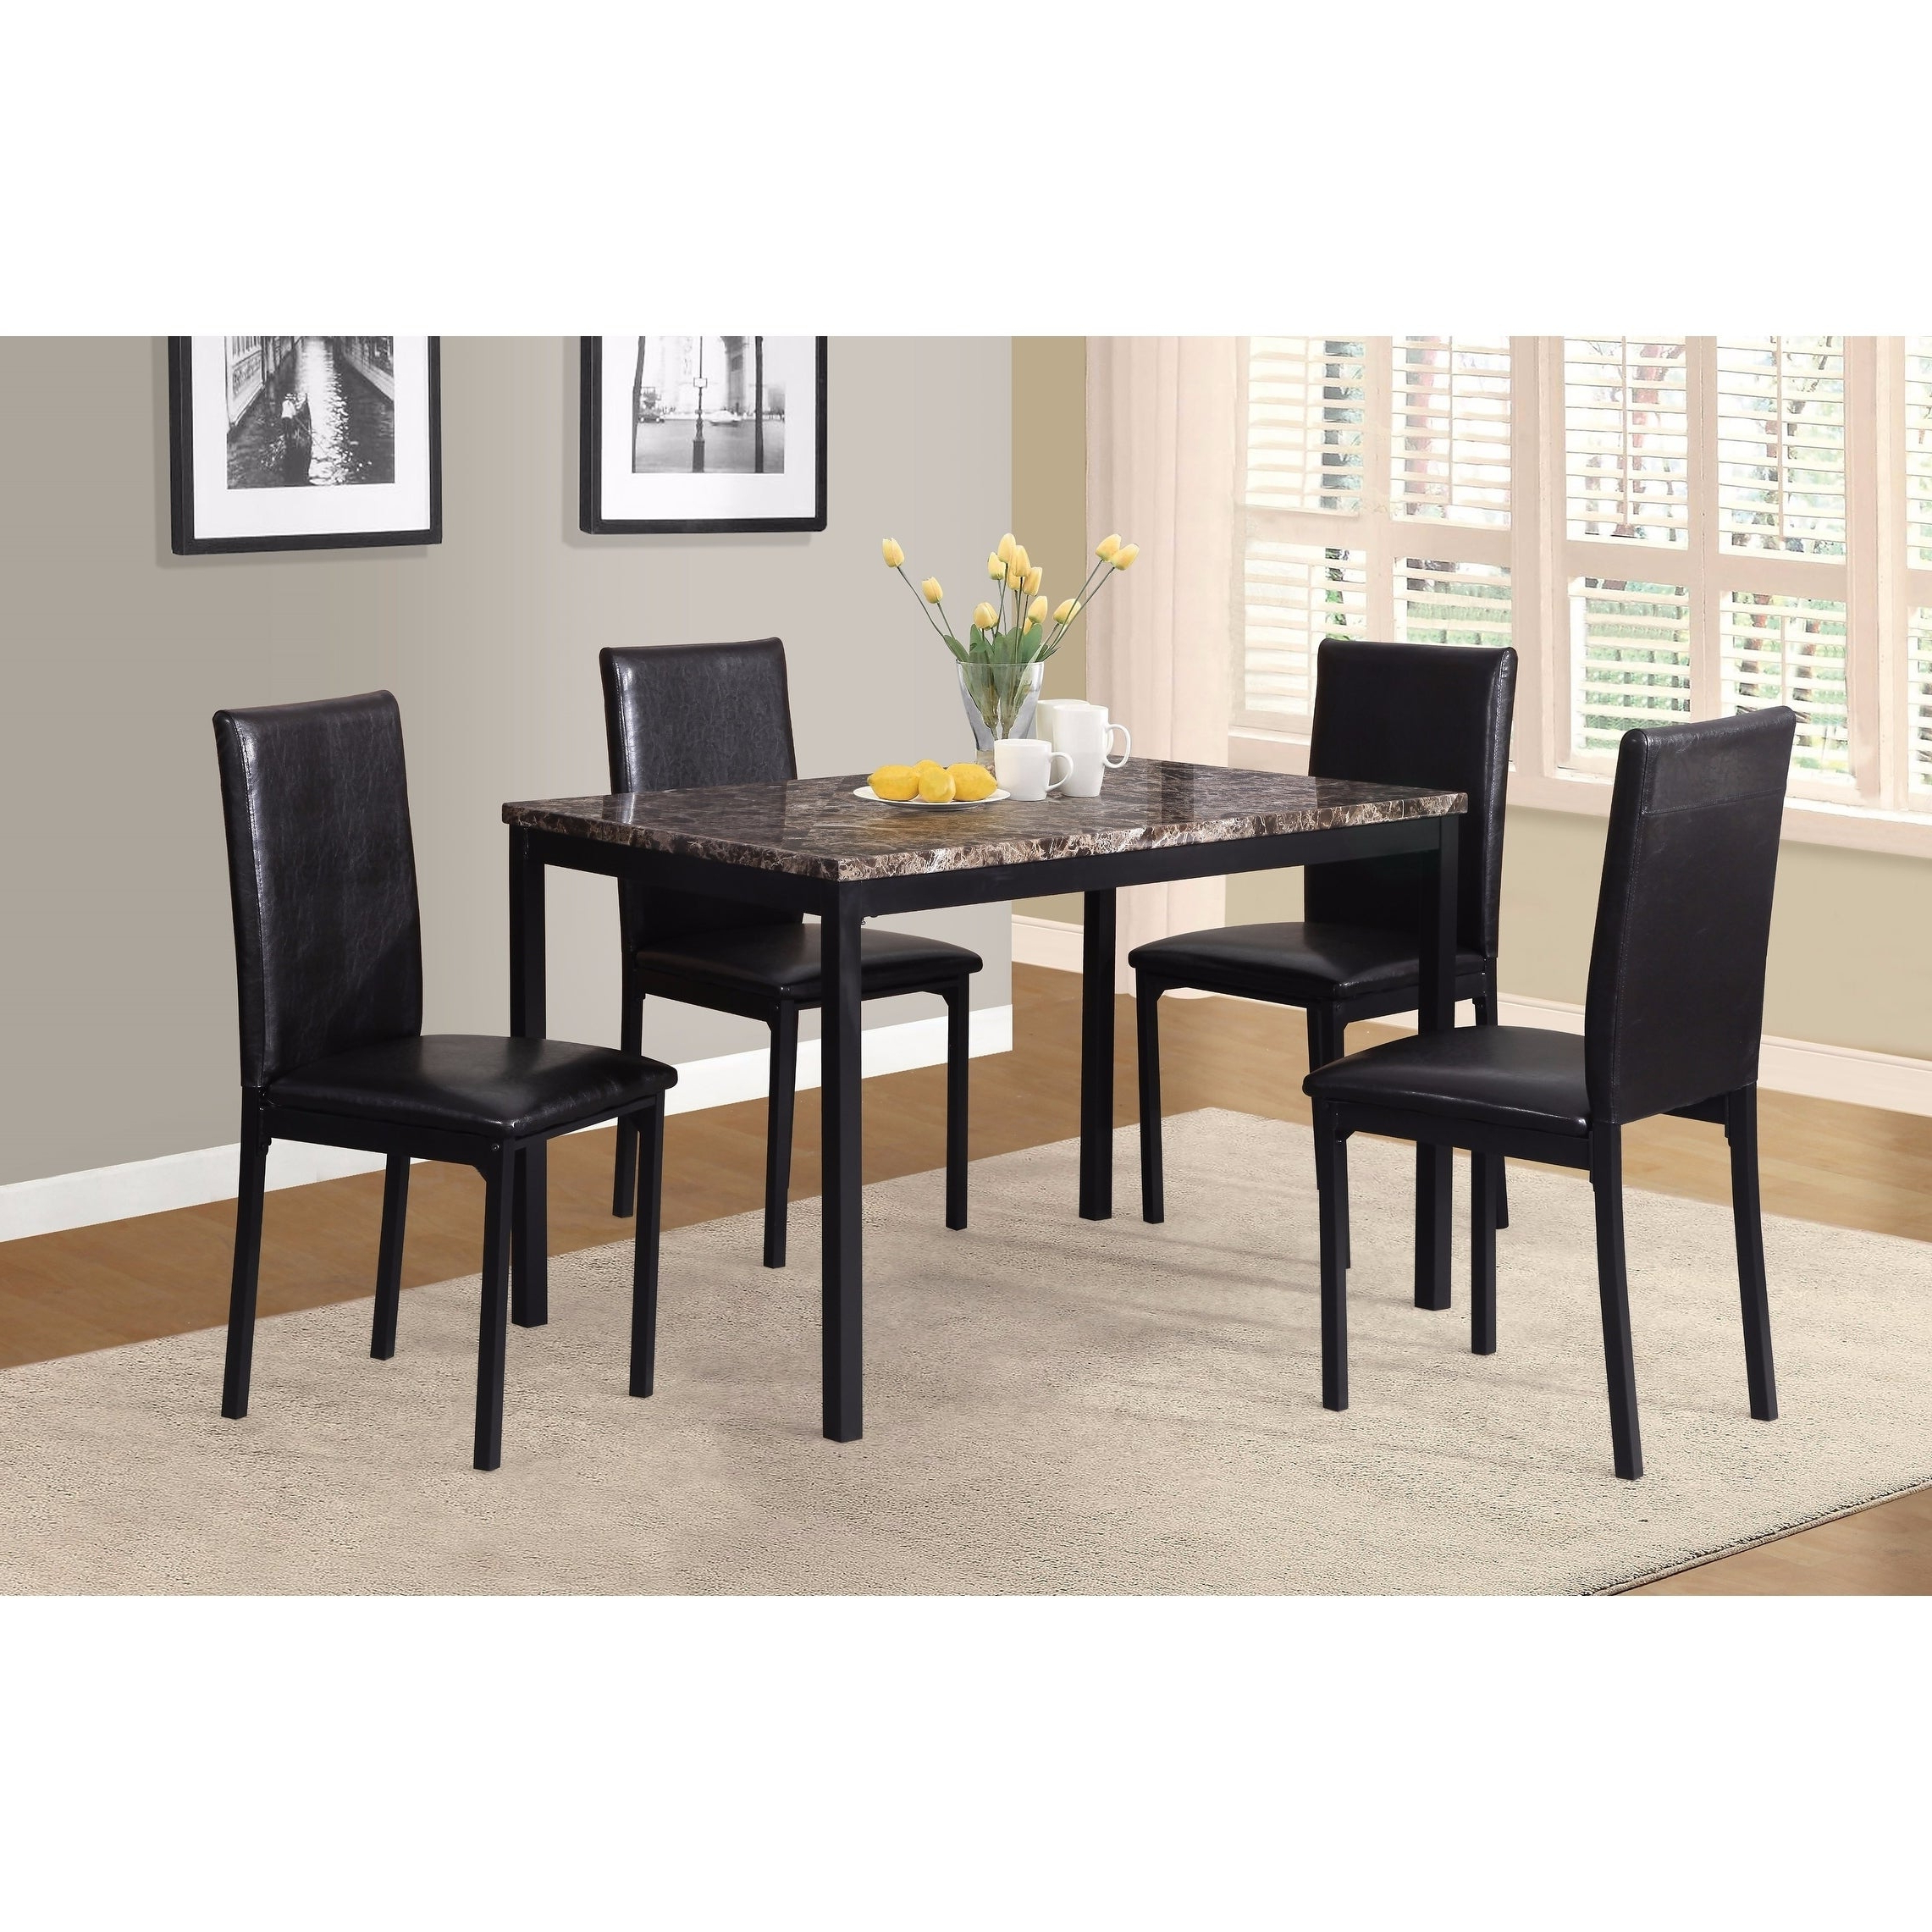 Noyes 5 Piece Dining Sets Within Best And Newest Noyes Metal Dining Table With Laminated Faux Marble Top – Black (Gallery 9 of 20)